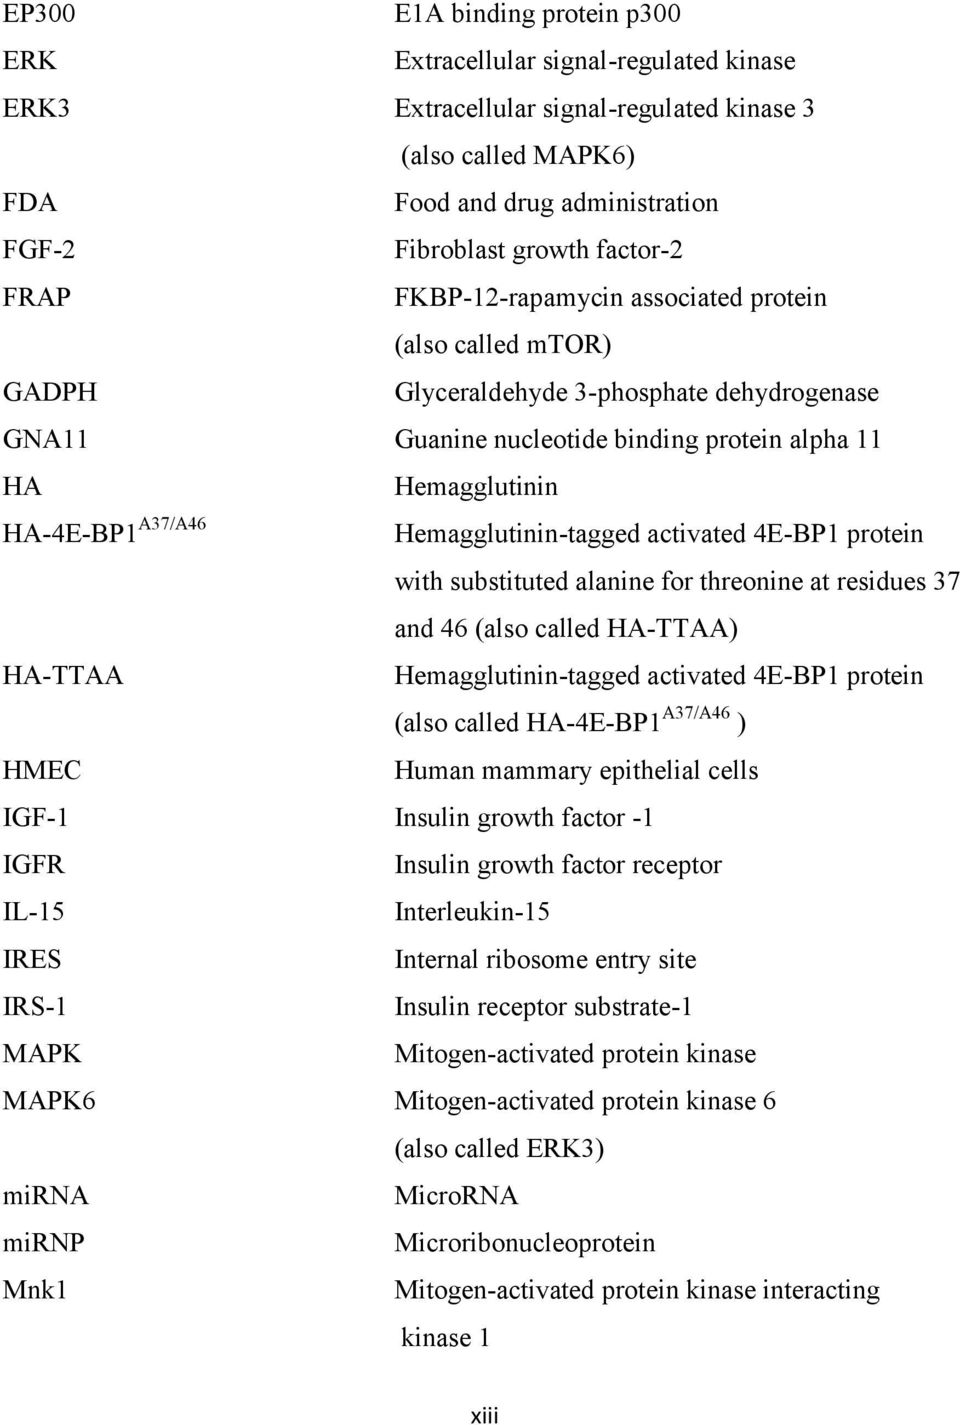 HA-4E-BP1A37/A46 Hemagglutinin-tagged activated 4E-BP1 protein with substituted alanine for threonine at residues 37 and 46 (also called HA-TTAA) HA-TTAA Hemagglutinin-tagged activated 4E-BP1 protein